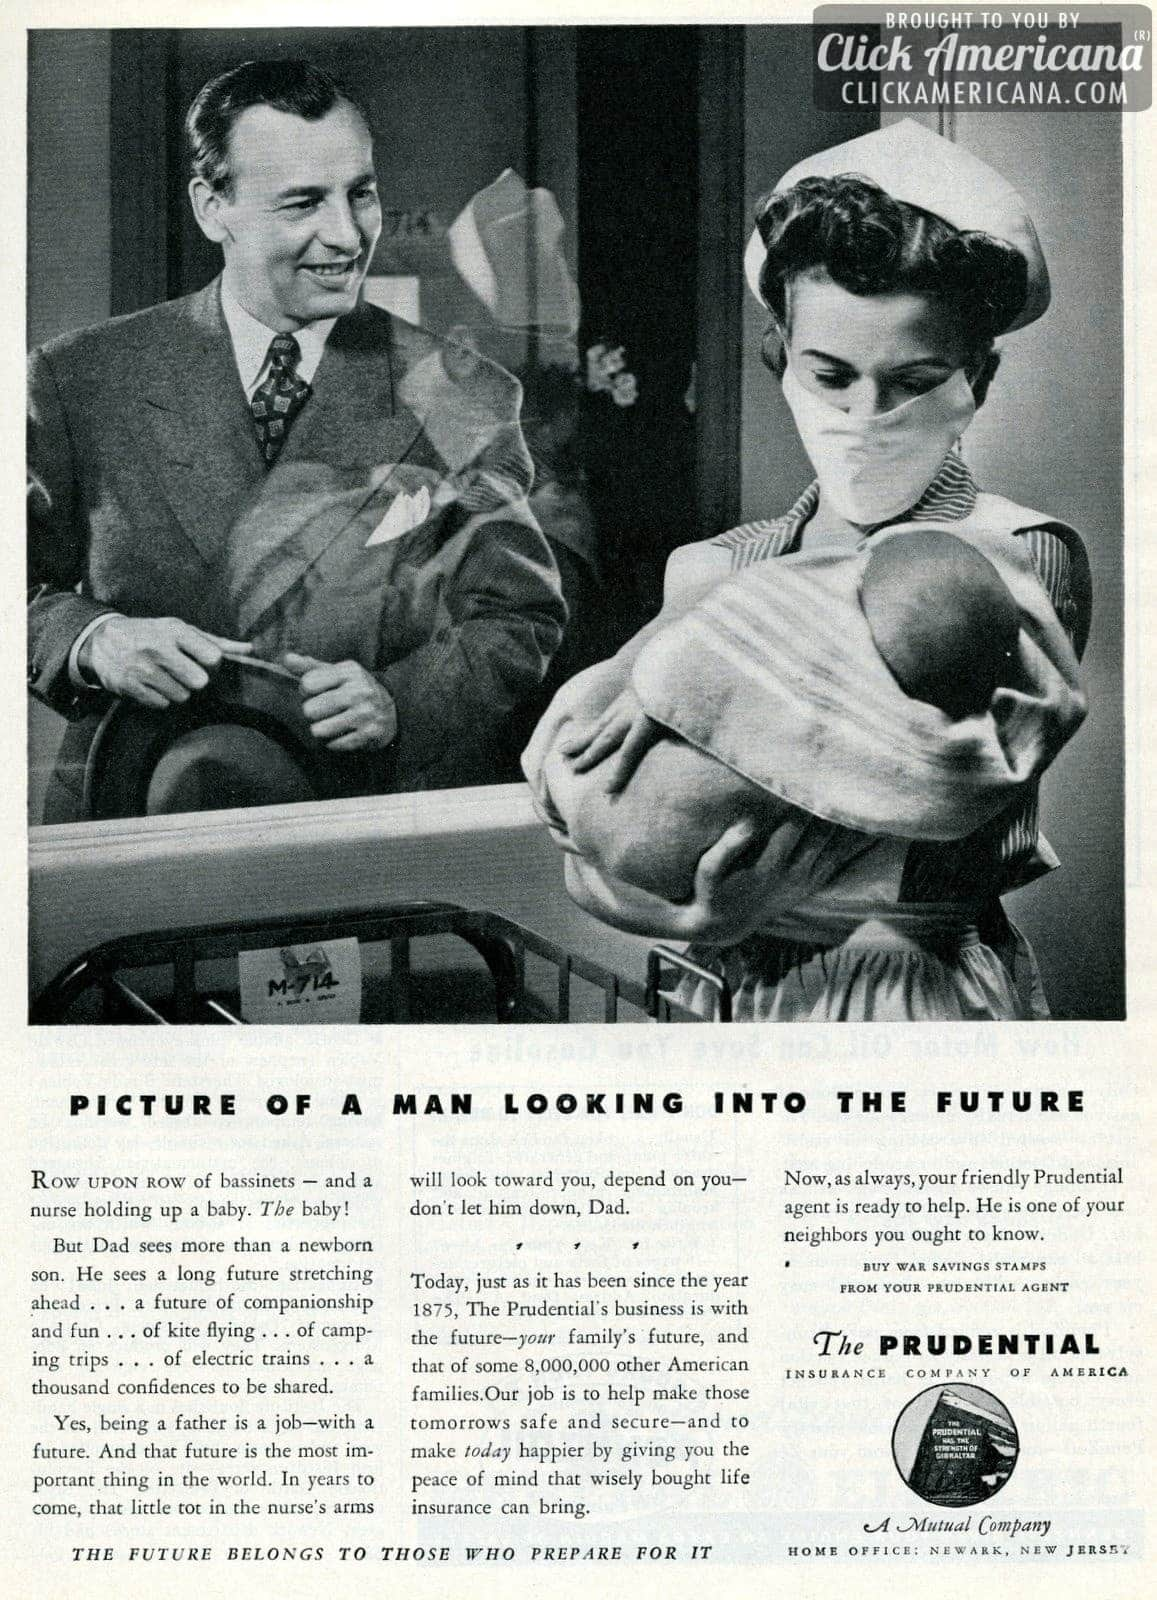 Rows of bassis and a nurse holding up a baby 1943